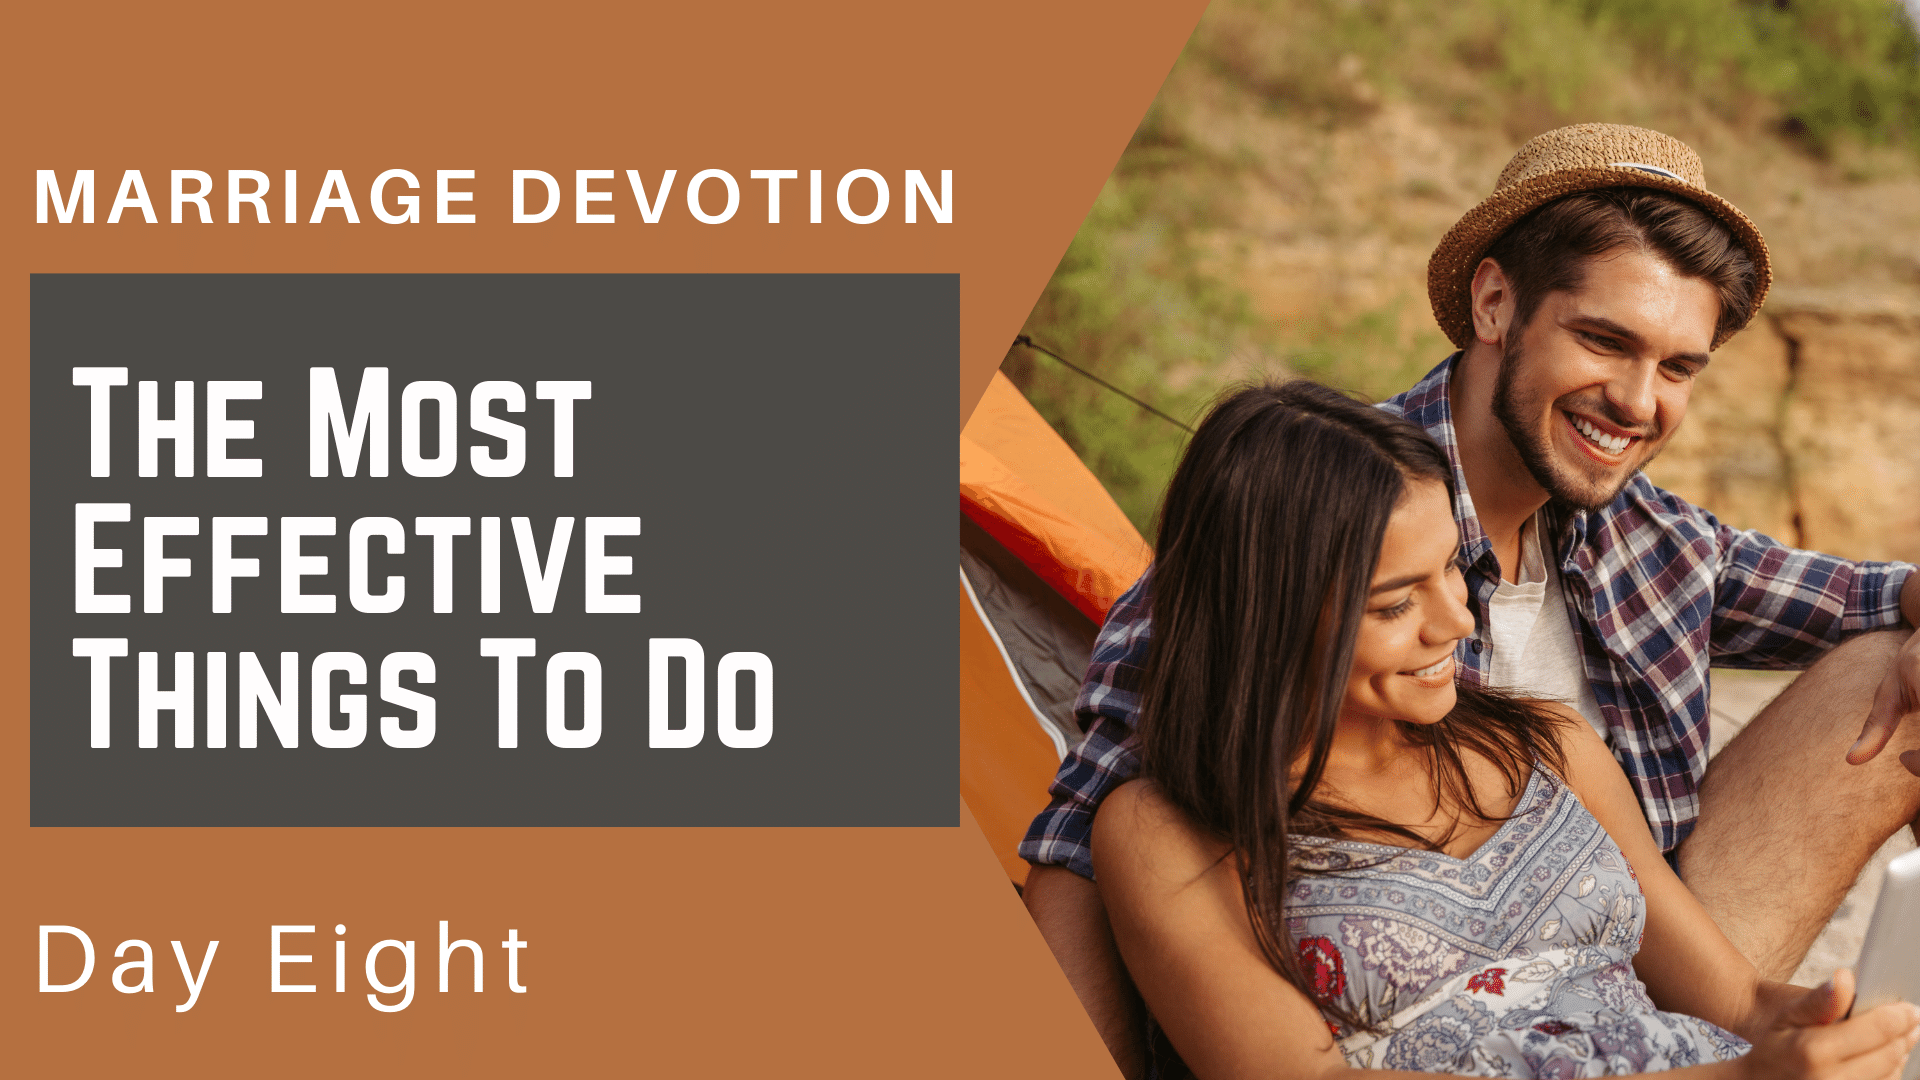 Marriage Devotion Day 8 – The Most Effective Thing You Can Do